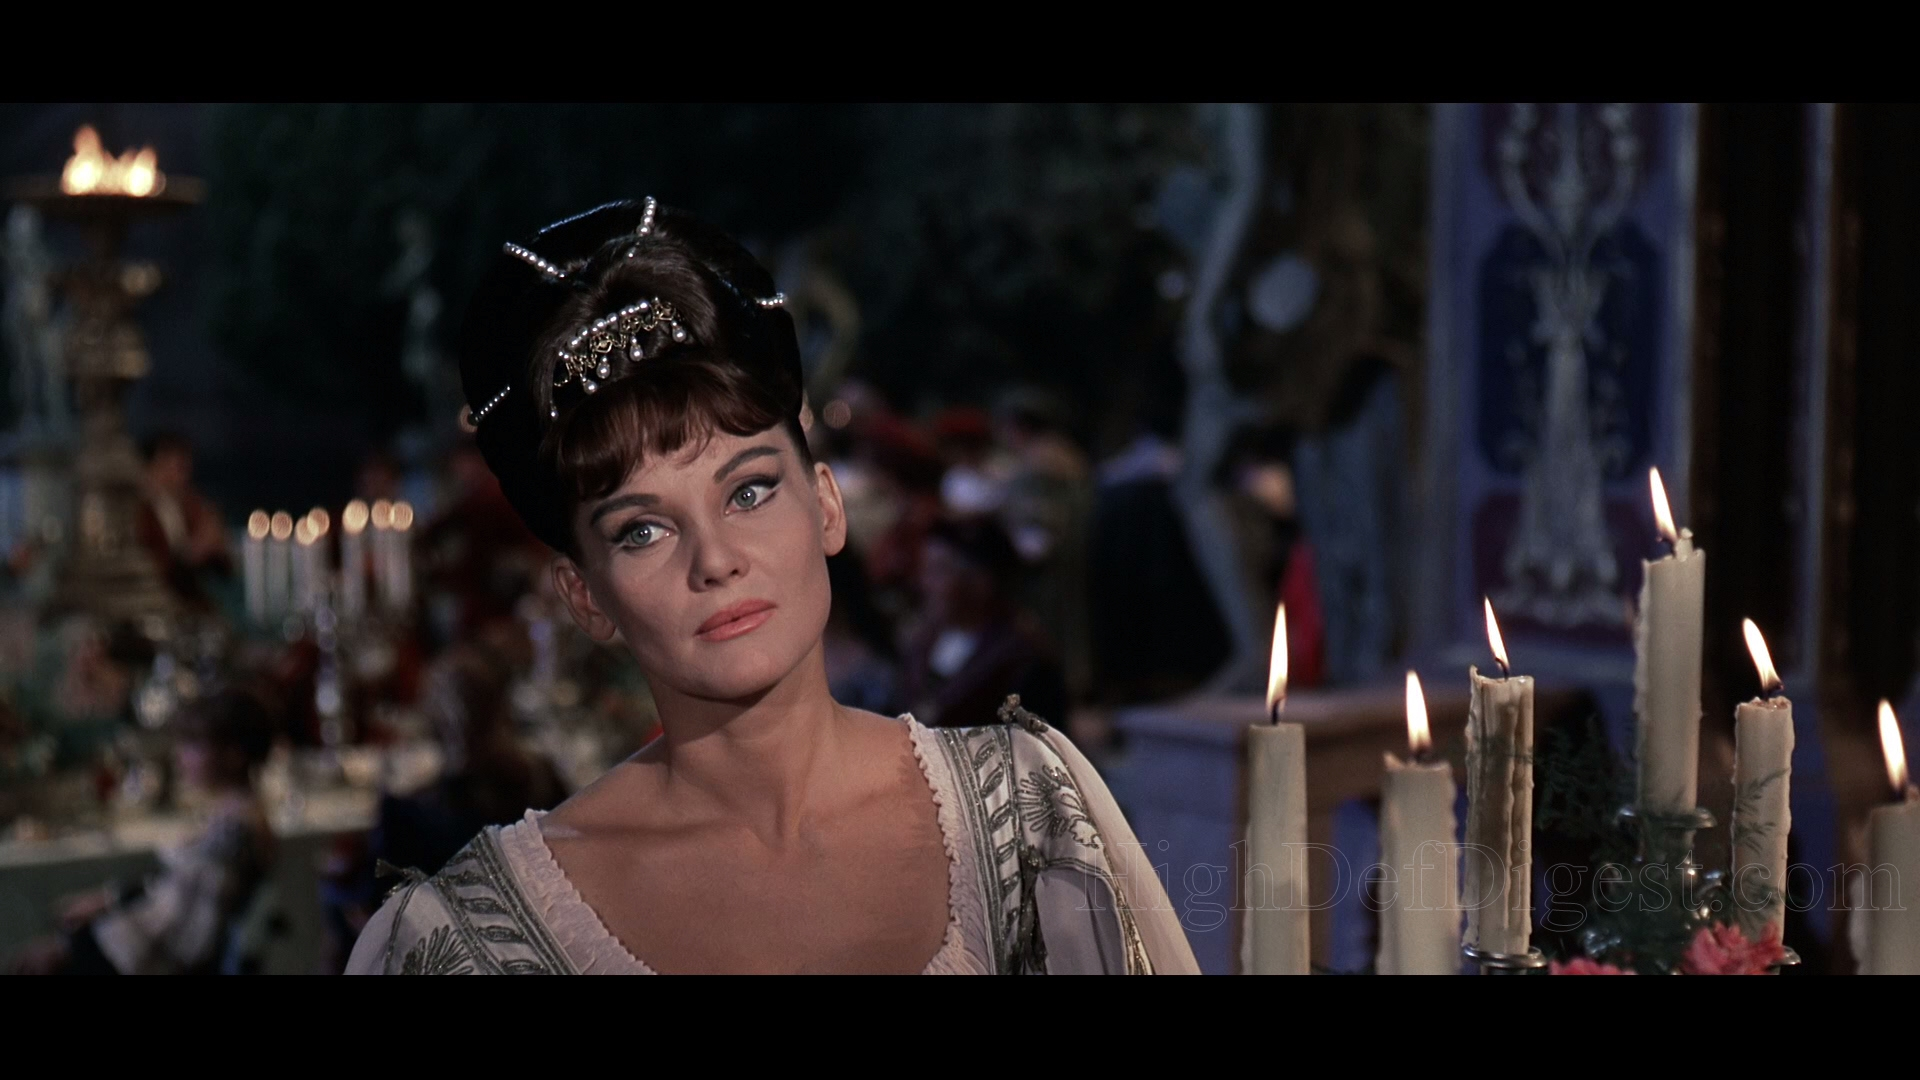 the agony and the ecstasy The agony and the ecstasy 1965 directed by: carol reed rated not rated  drama 138 minutes sunday, december 6, 2015 3:00 pm.